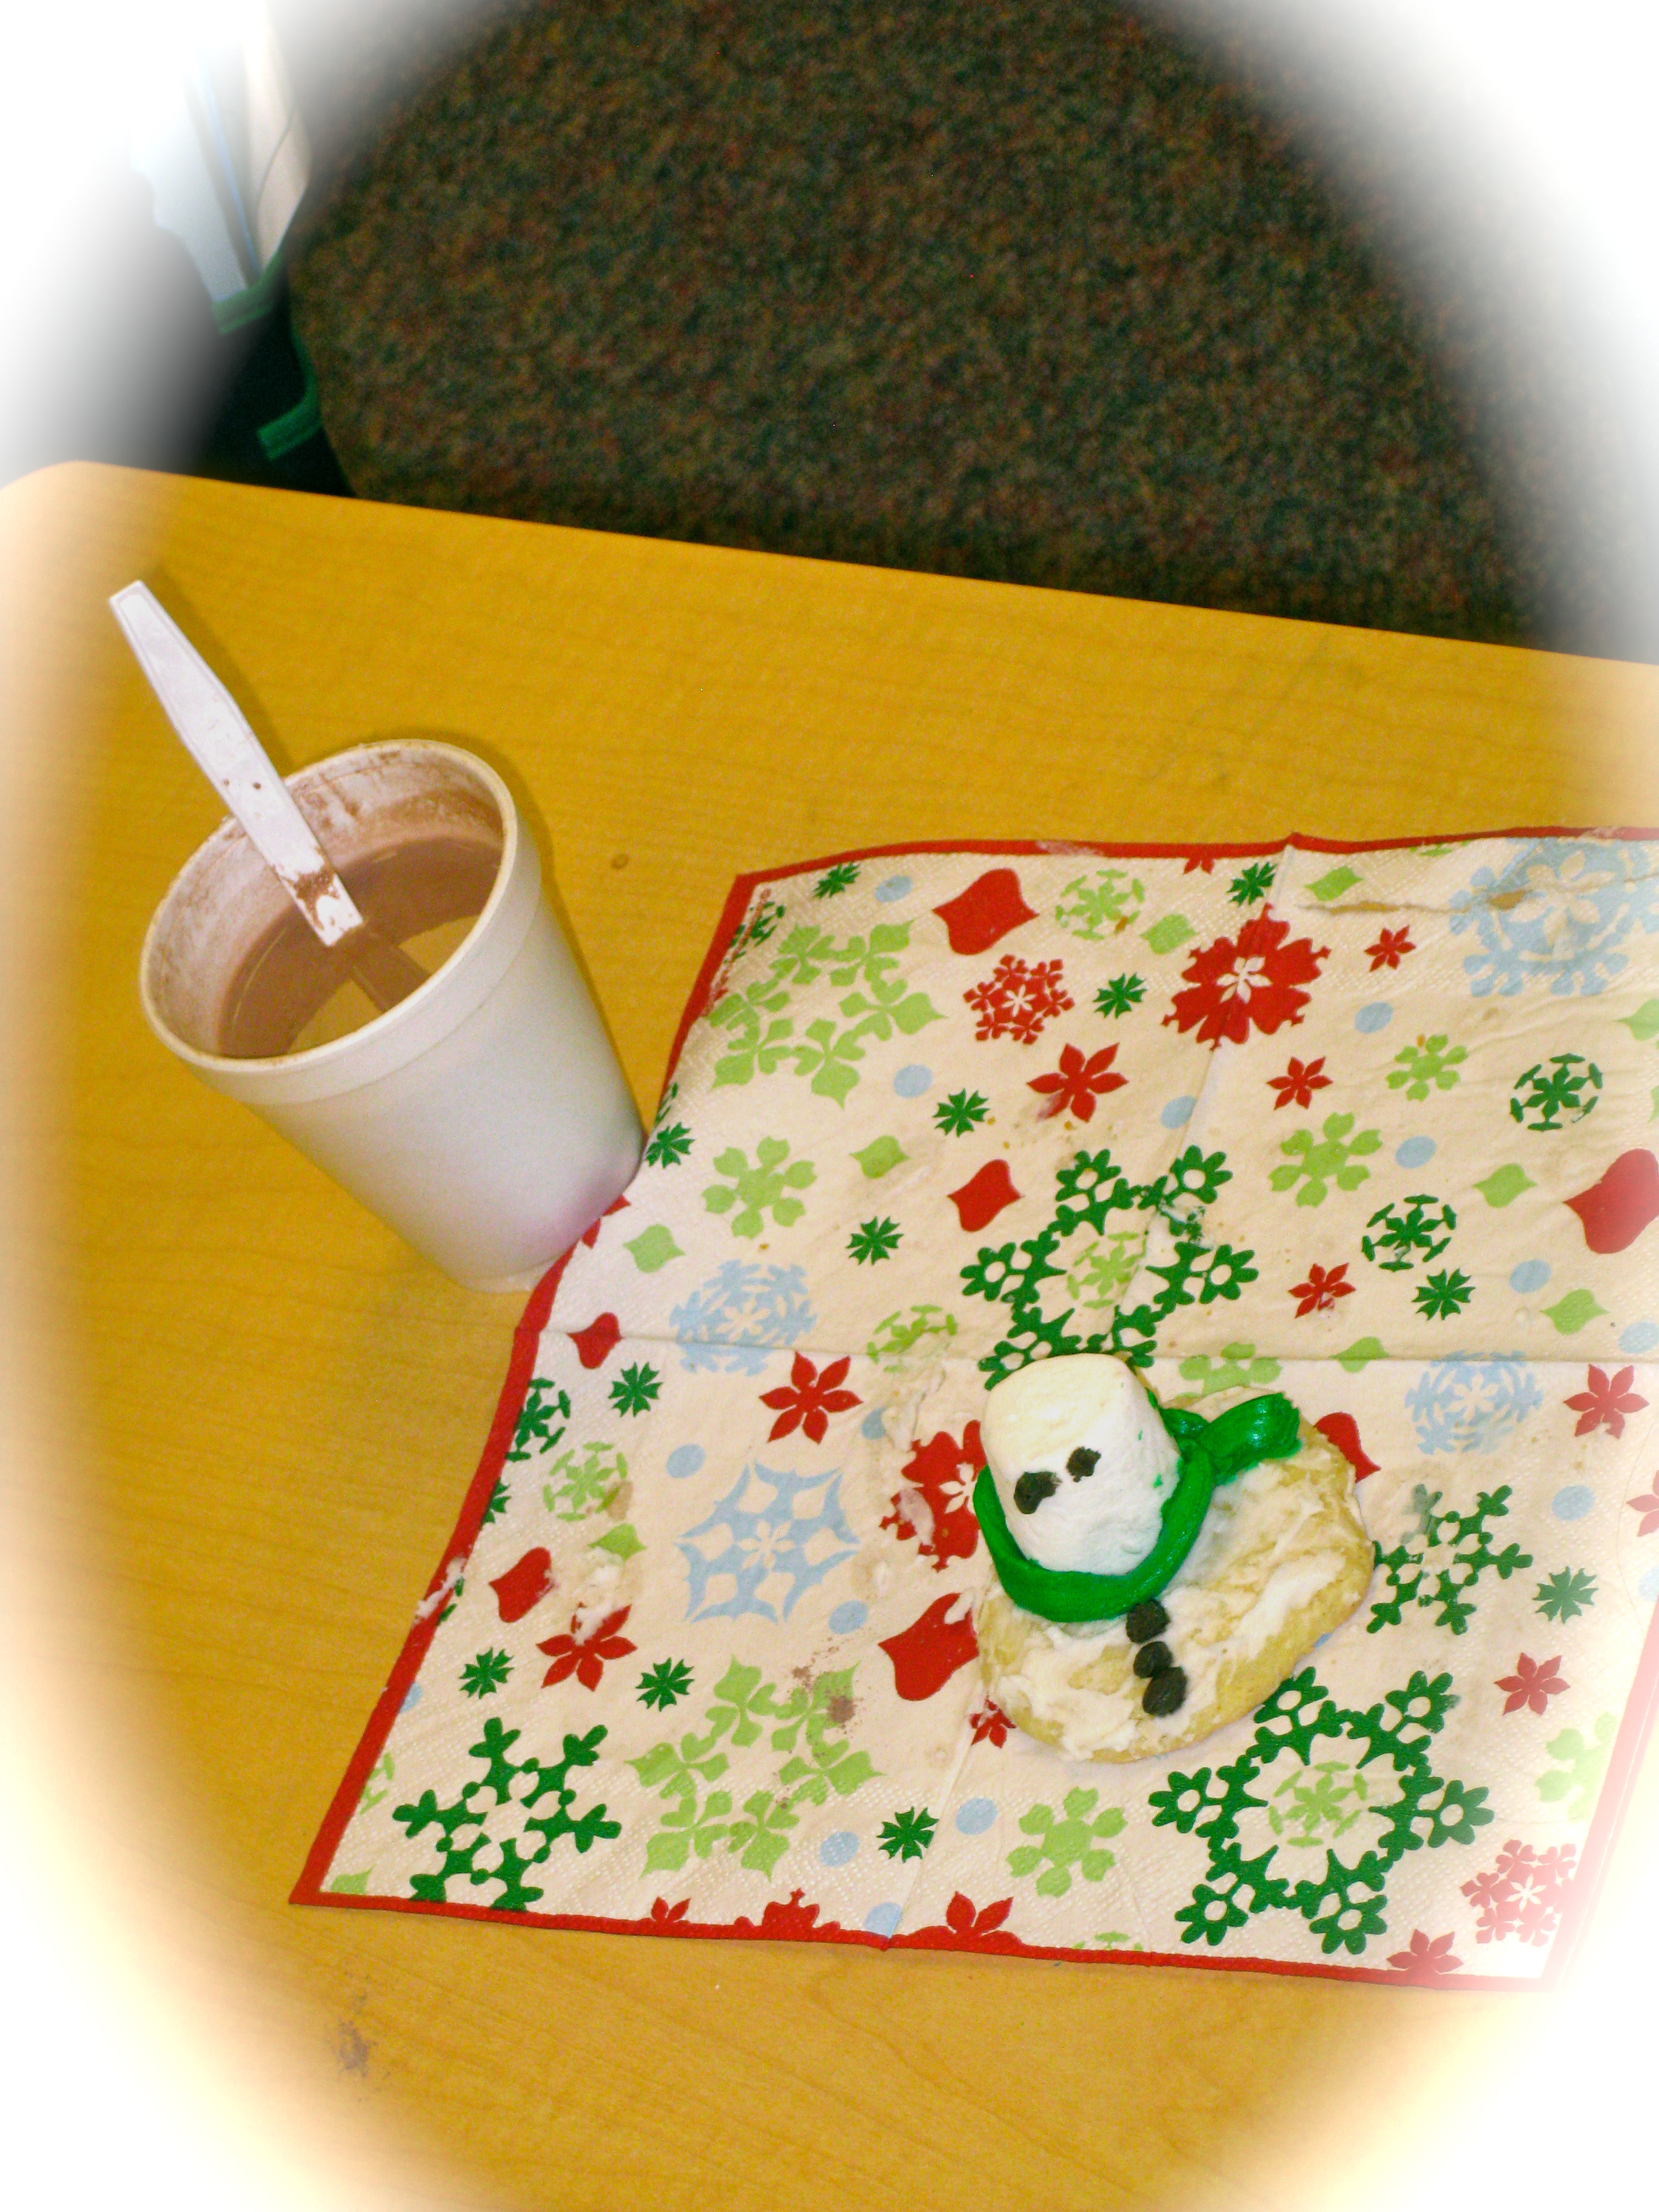 Christmas crafts for kids spinach and sprinkles for 3rd grade christmas craft ideas